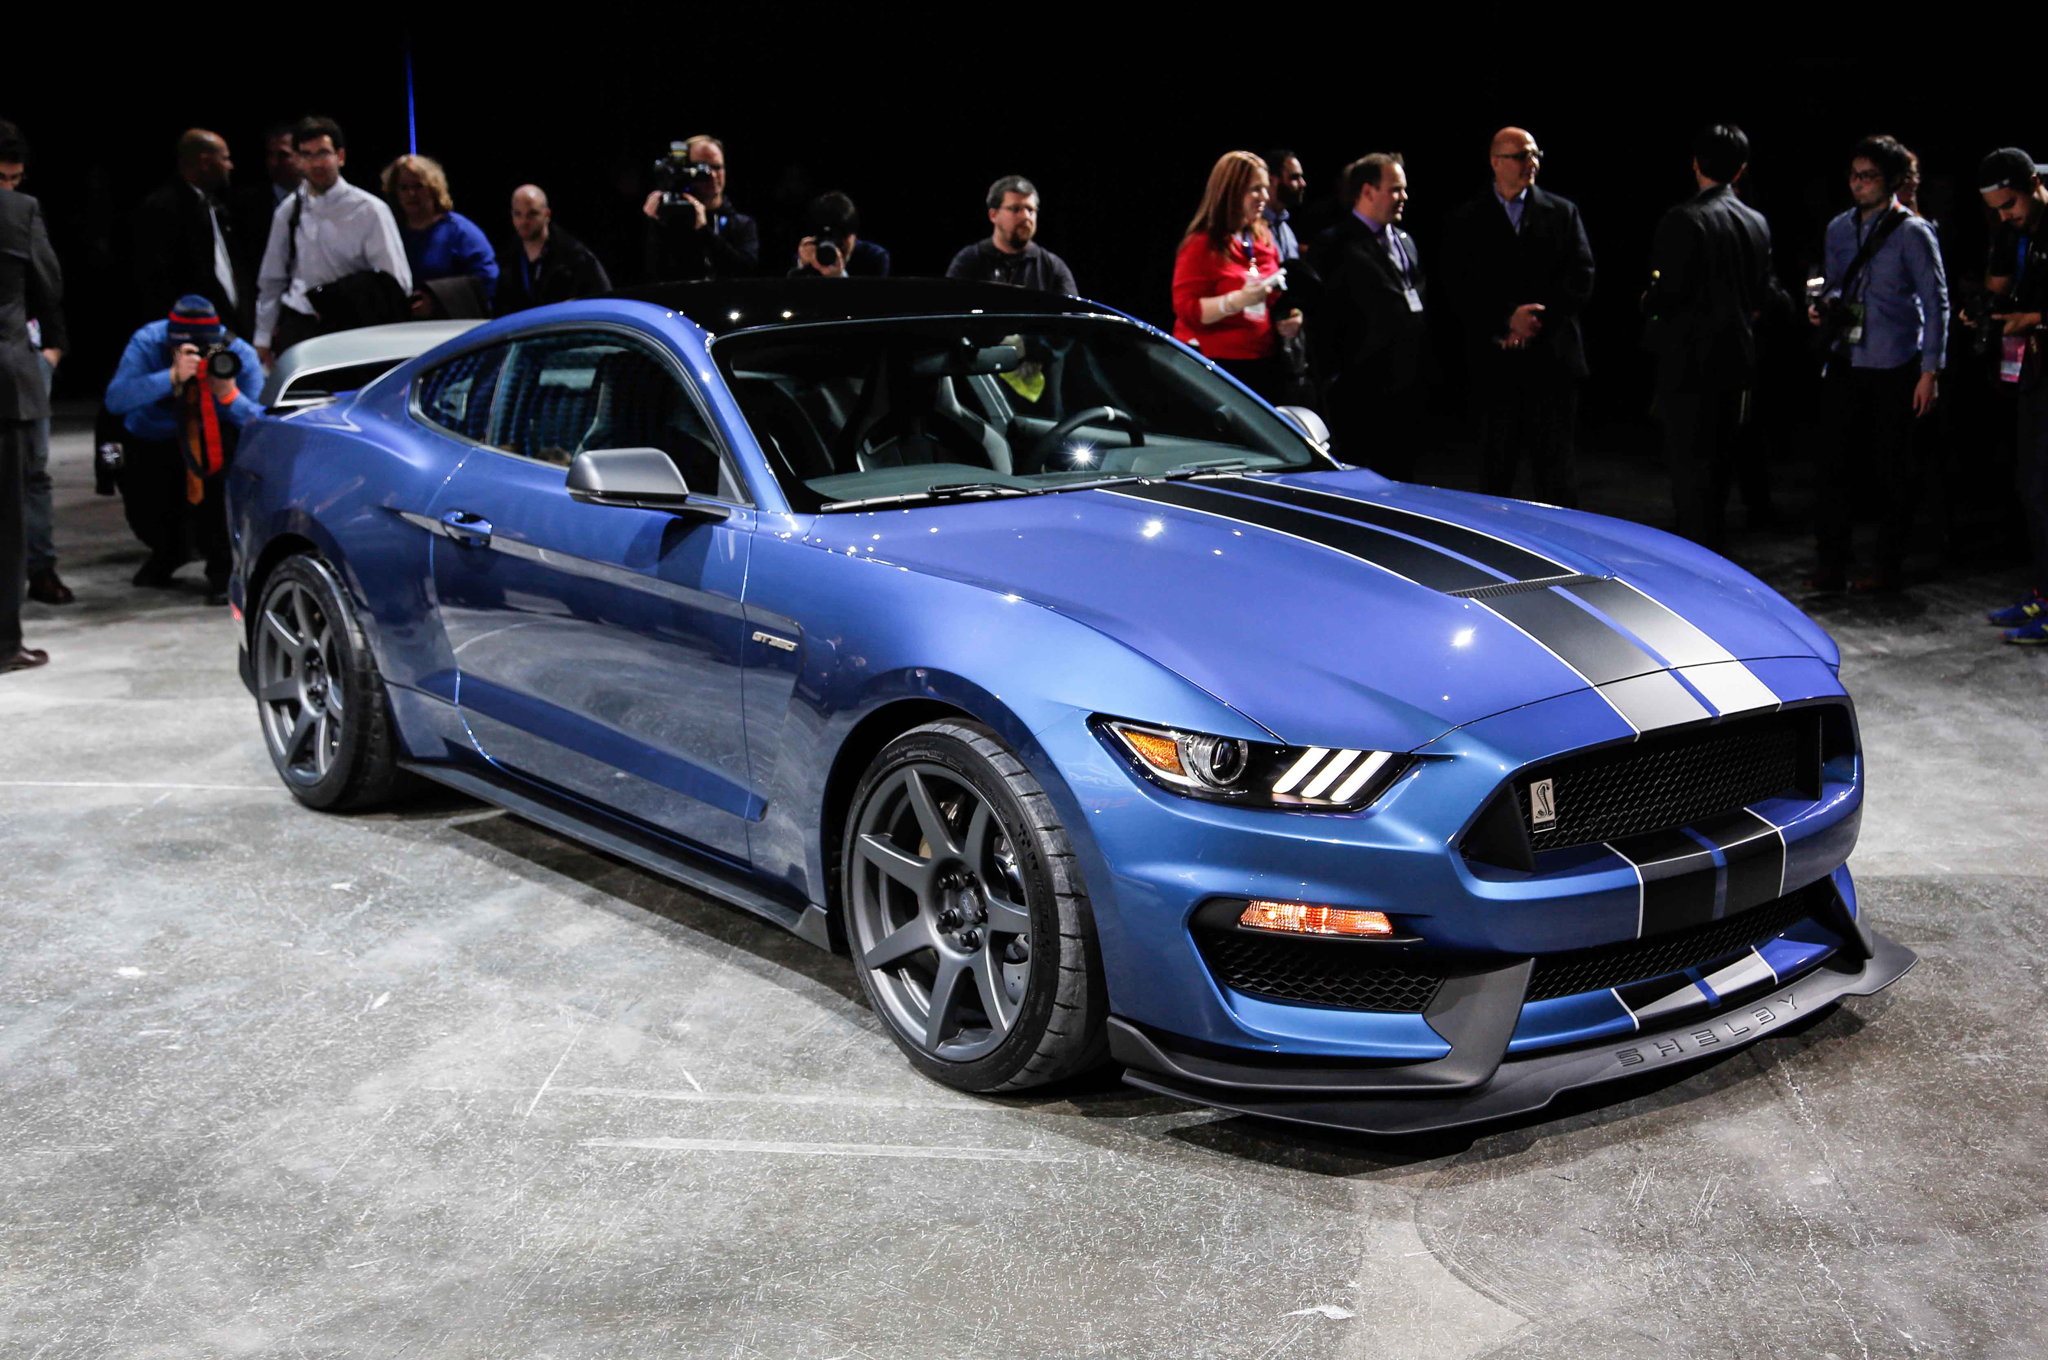 2016 ford shelby gt350r mustang - 2016 Ford Mustang Gt350